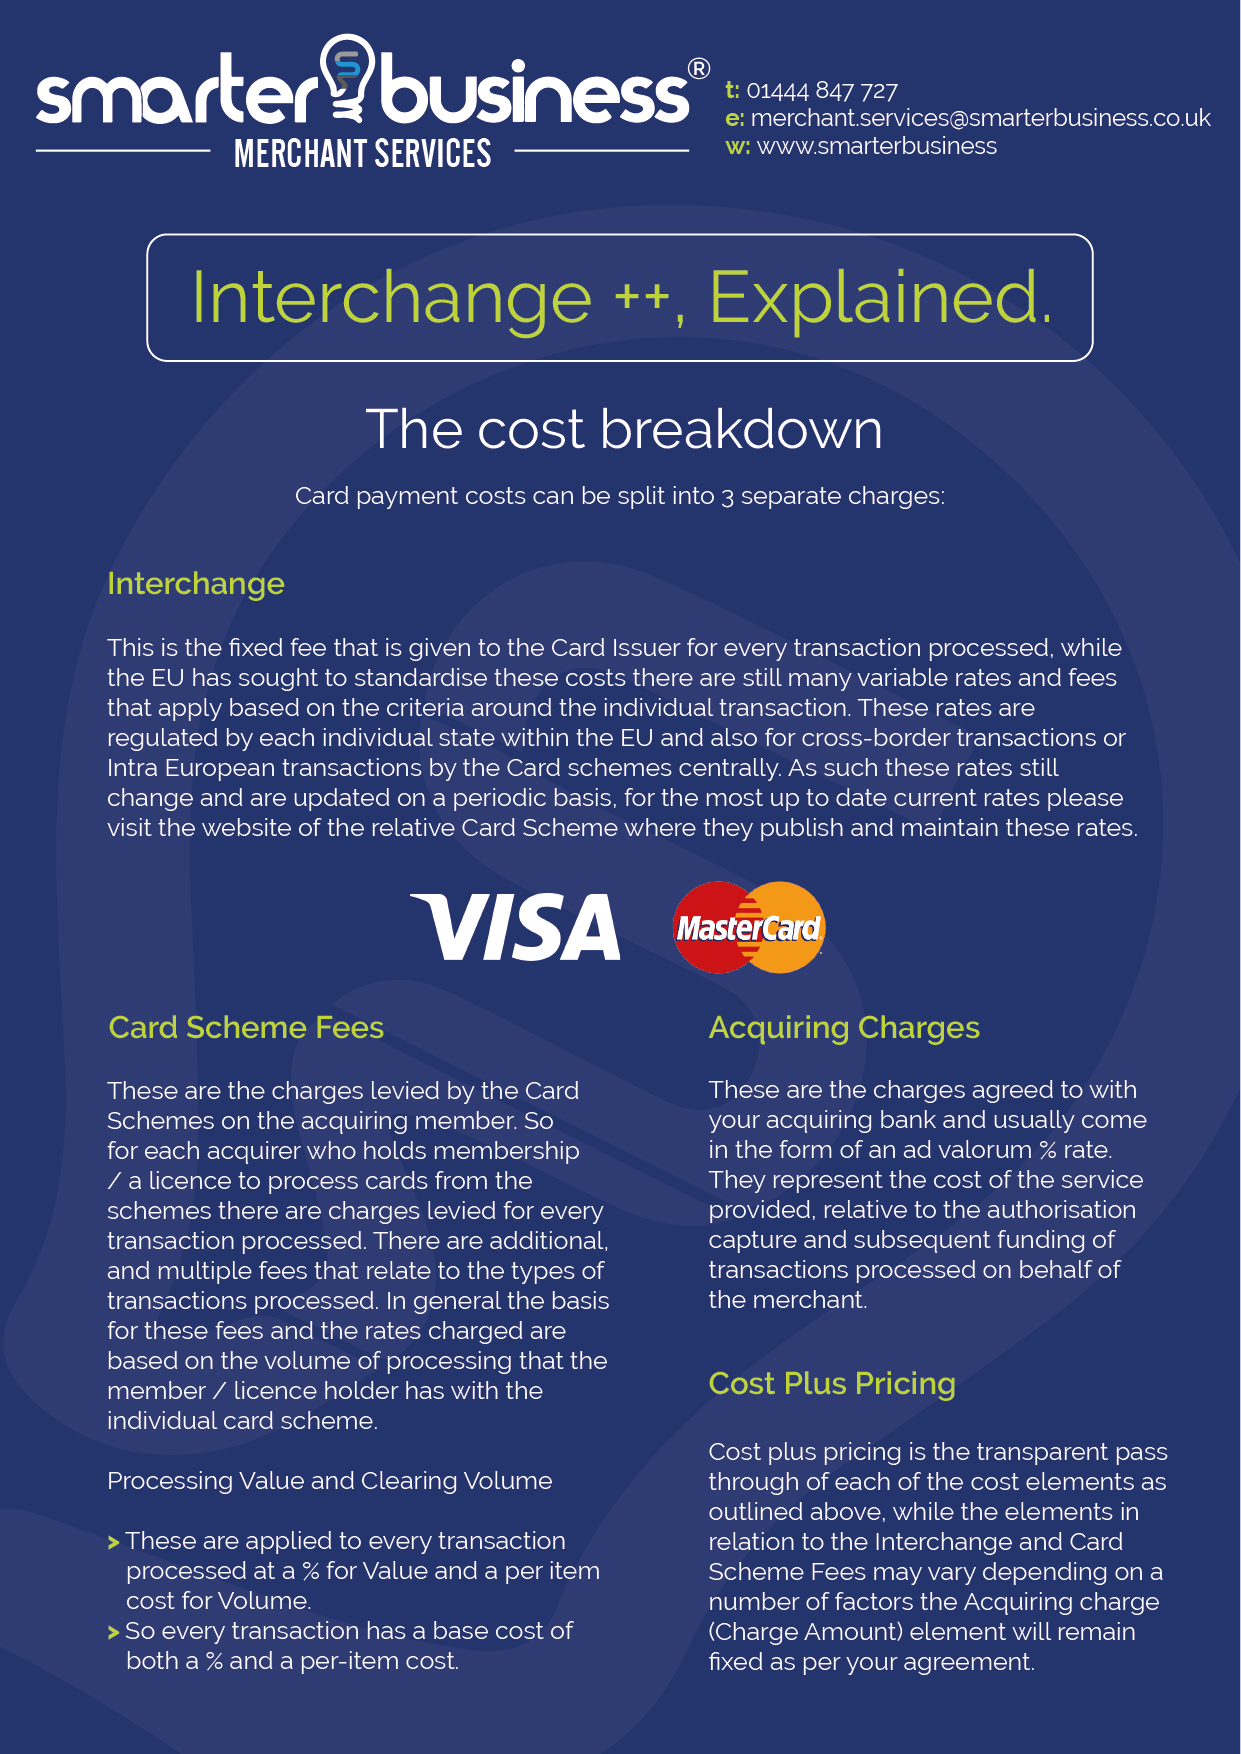 Interchange Plus Pricing for Merchant Services